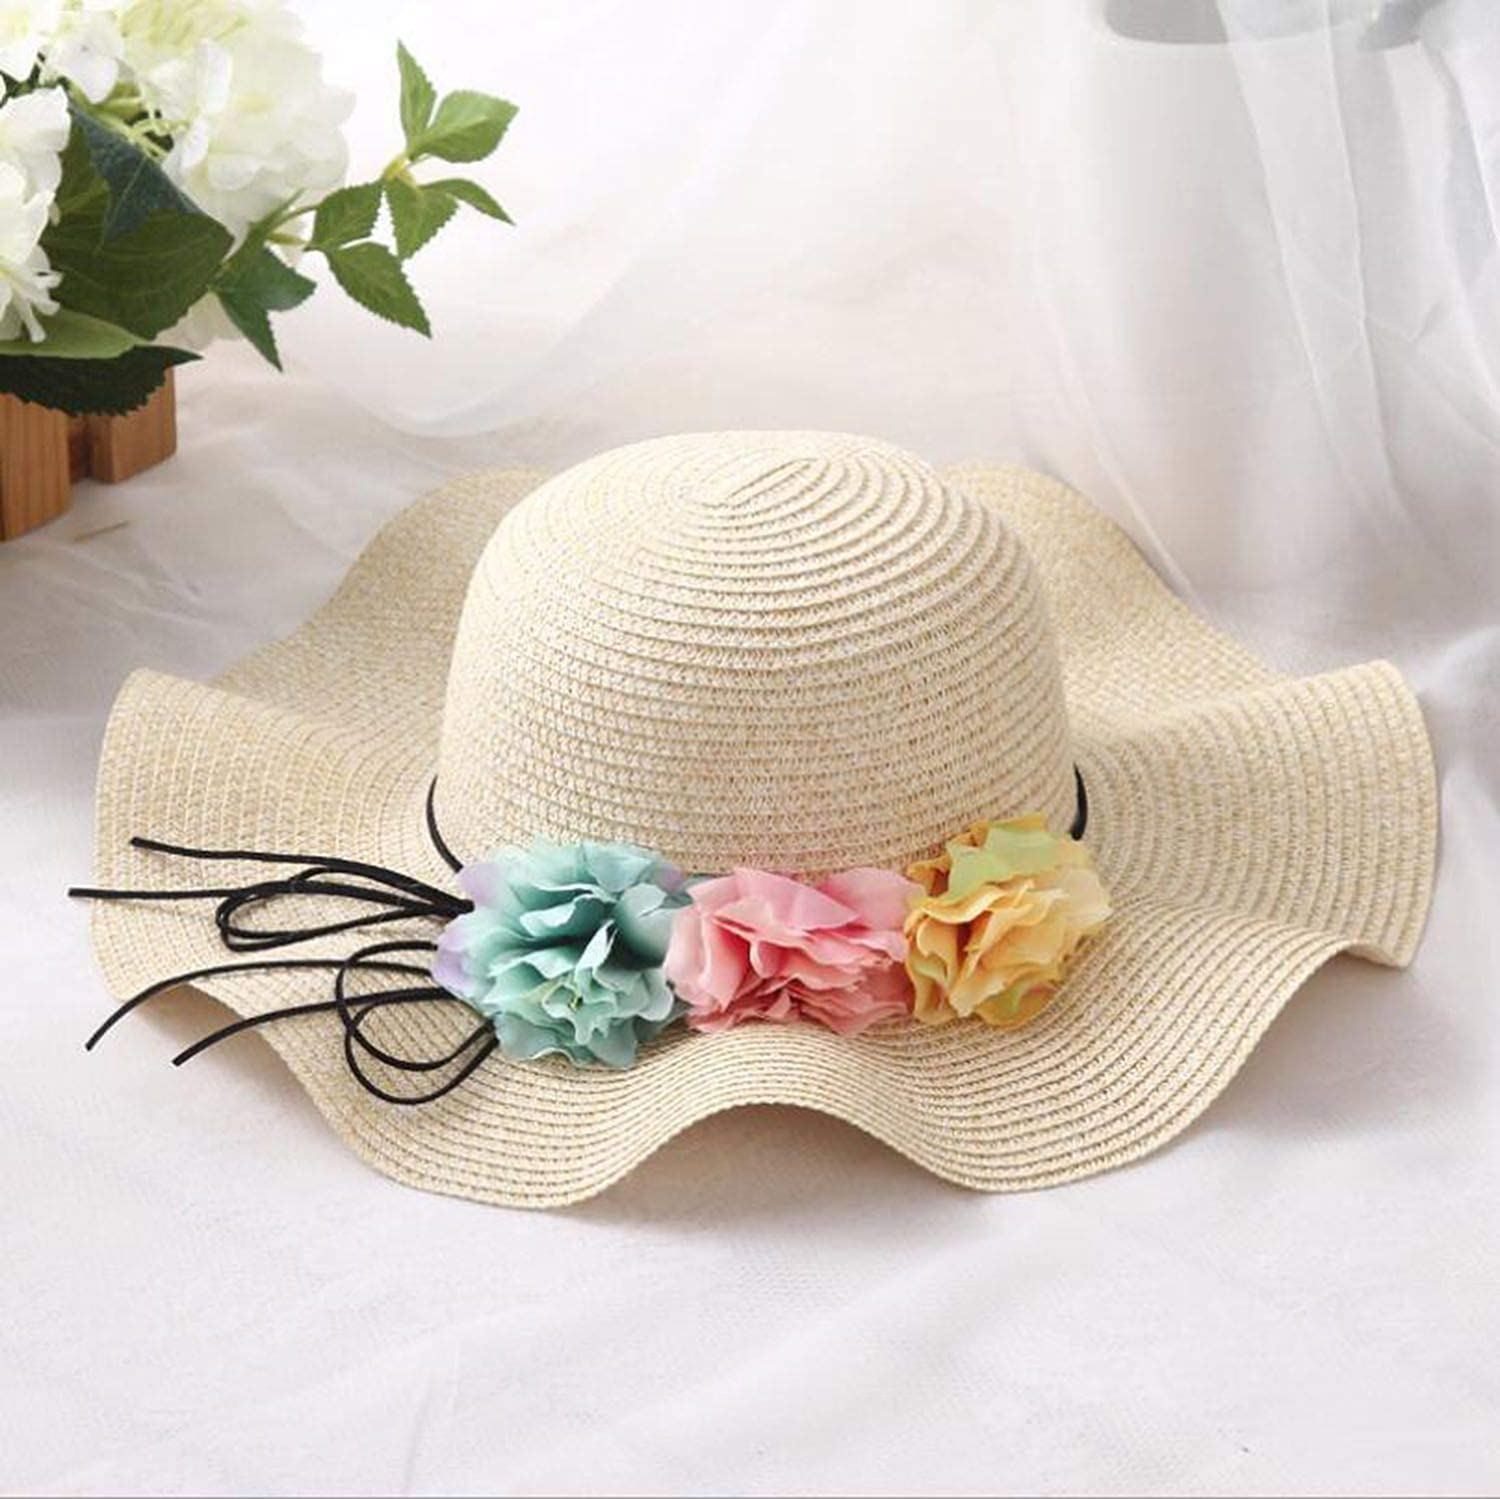 Parent-Child Cute Flower Sun Hats Hand Made Straw Wave Wide Brim Sun Hats Summer Woman Beach Hat